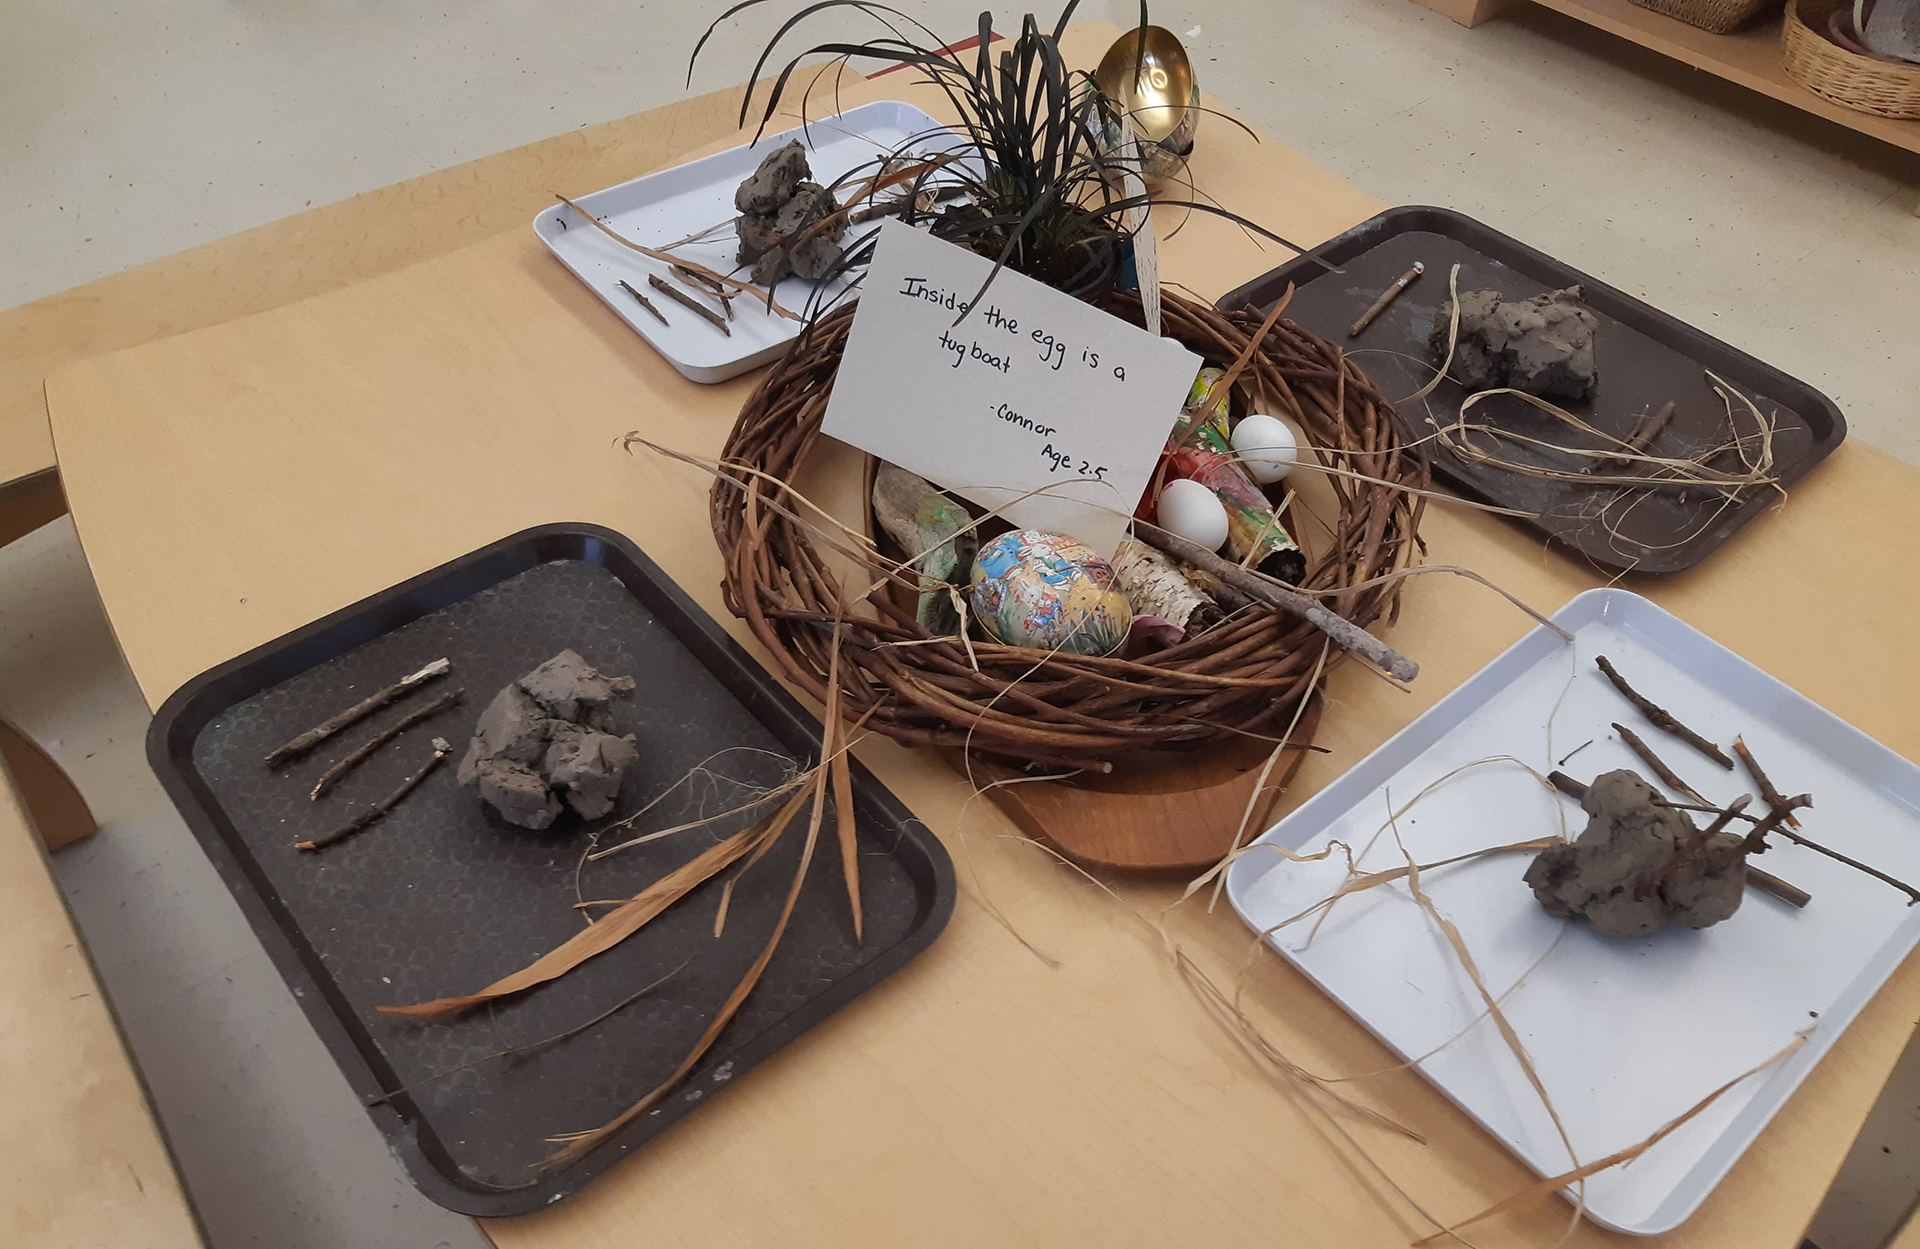 """A table set up with trays of various natural materials. There is a card which says """"Inside the egg is a toy boat"""""""